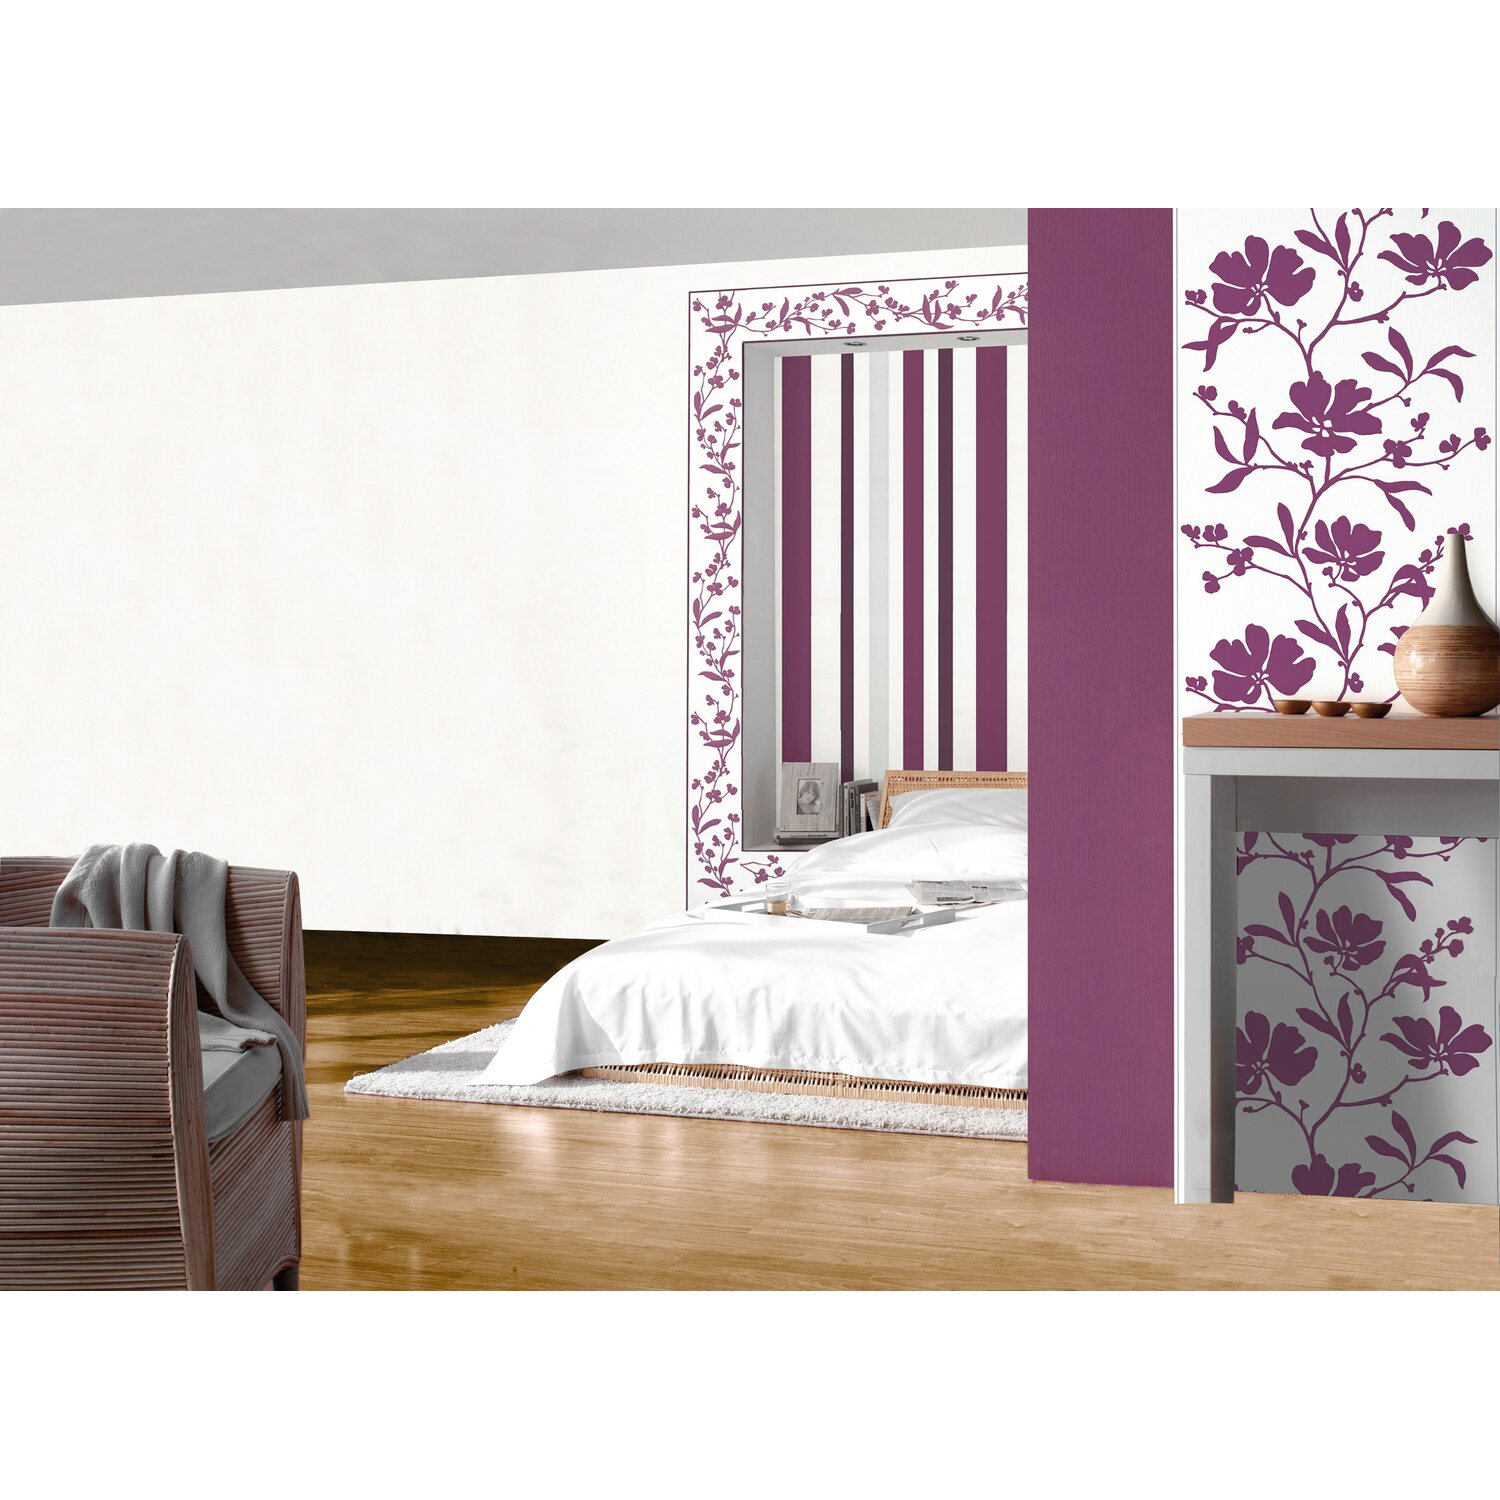 sch ner wohnen kollektion vliestapete streifen violett kaufen bei obi. Black Bedroom Furniture Sets. Home Design Ideas